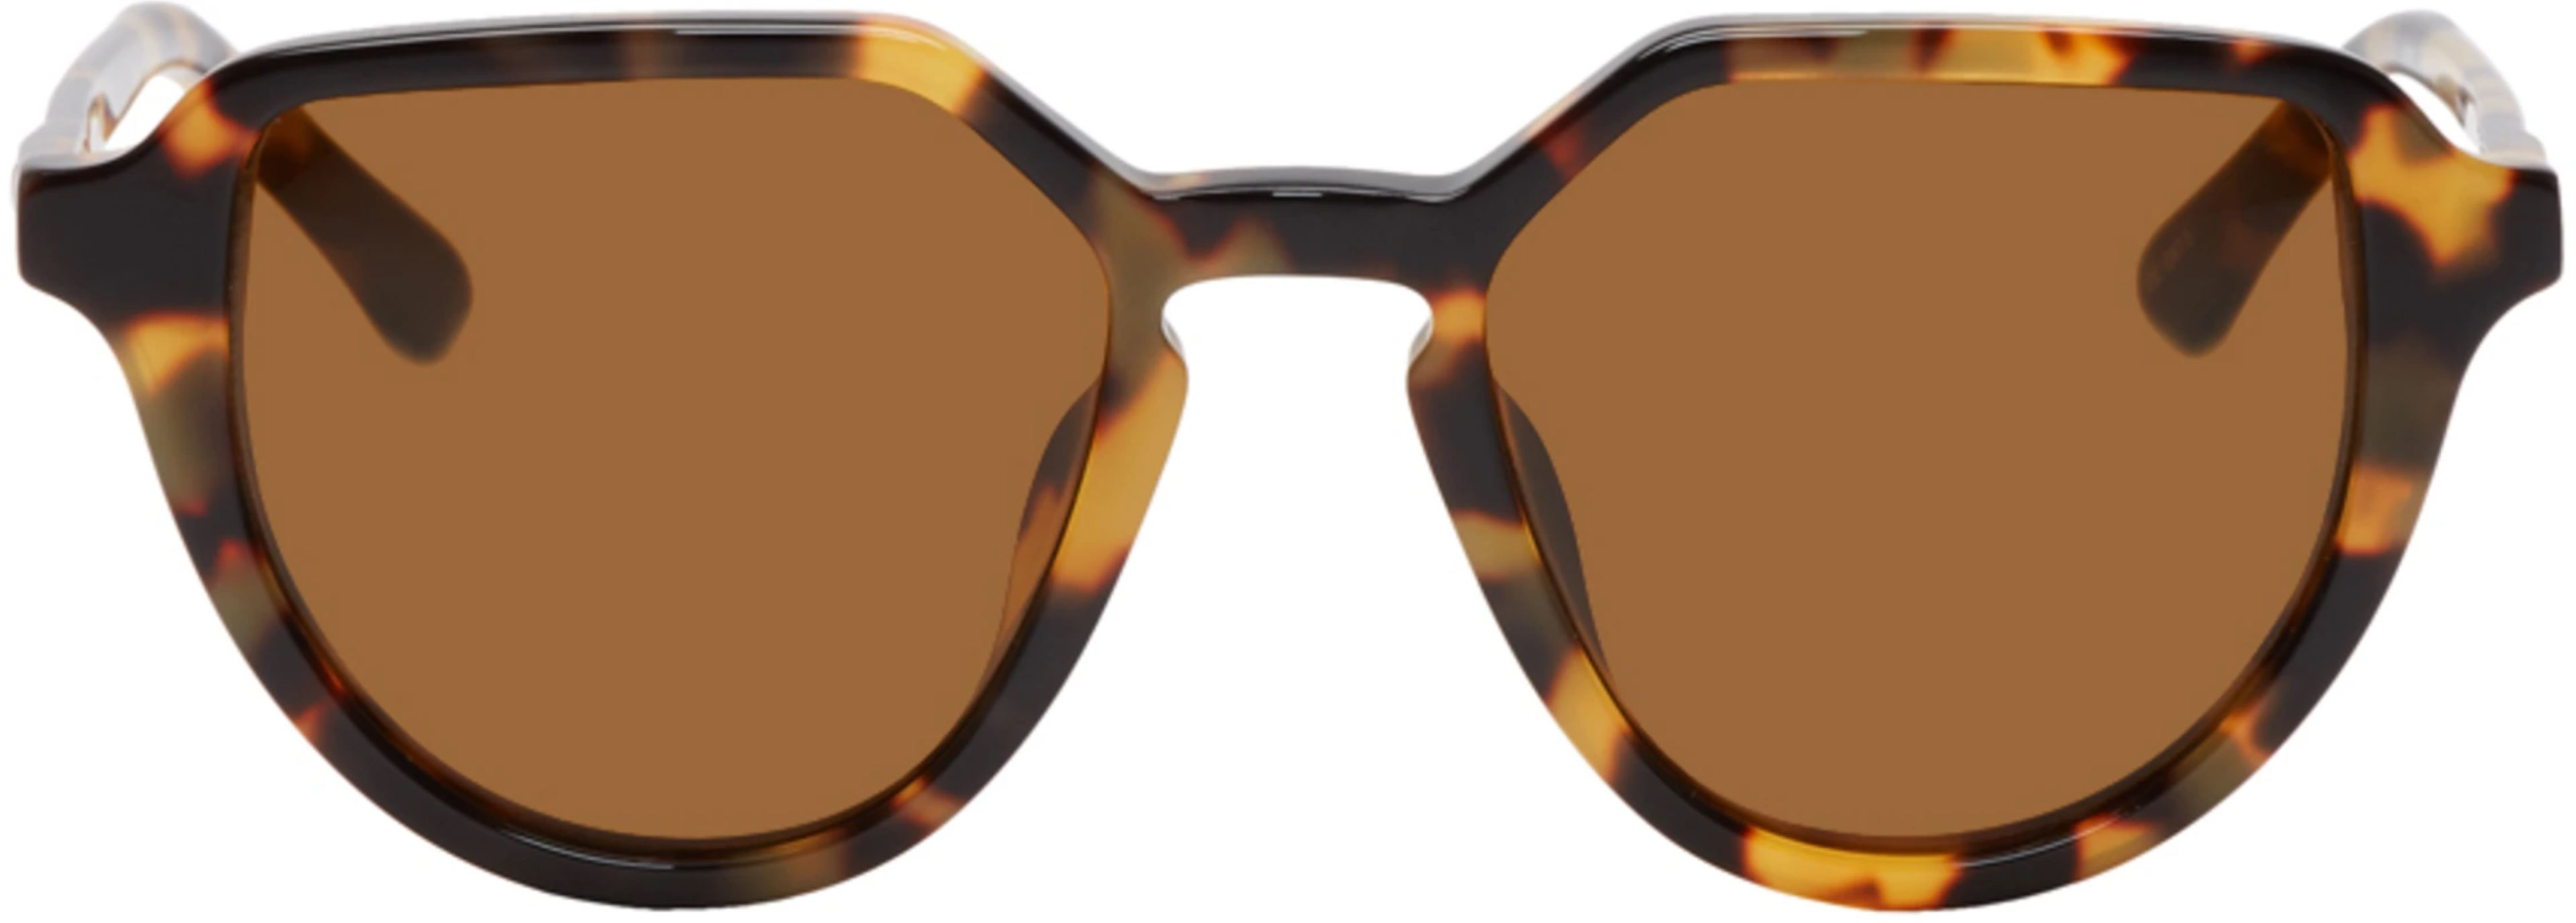 Dries Van Noten Shades from ssense.com